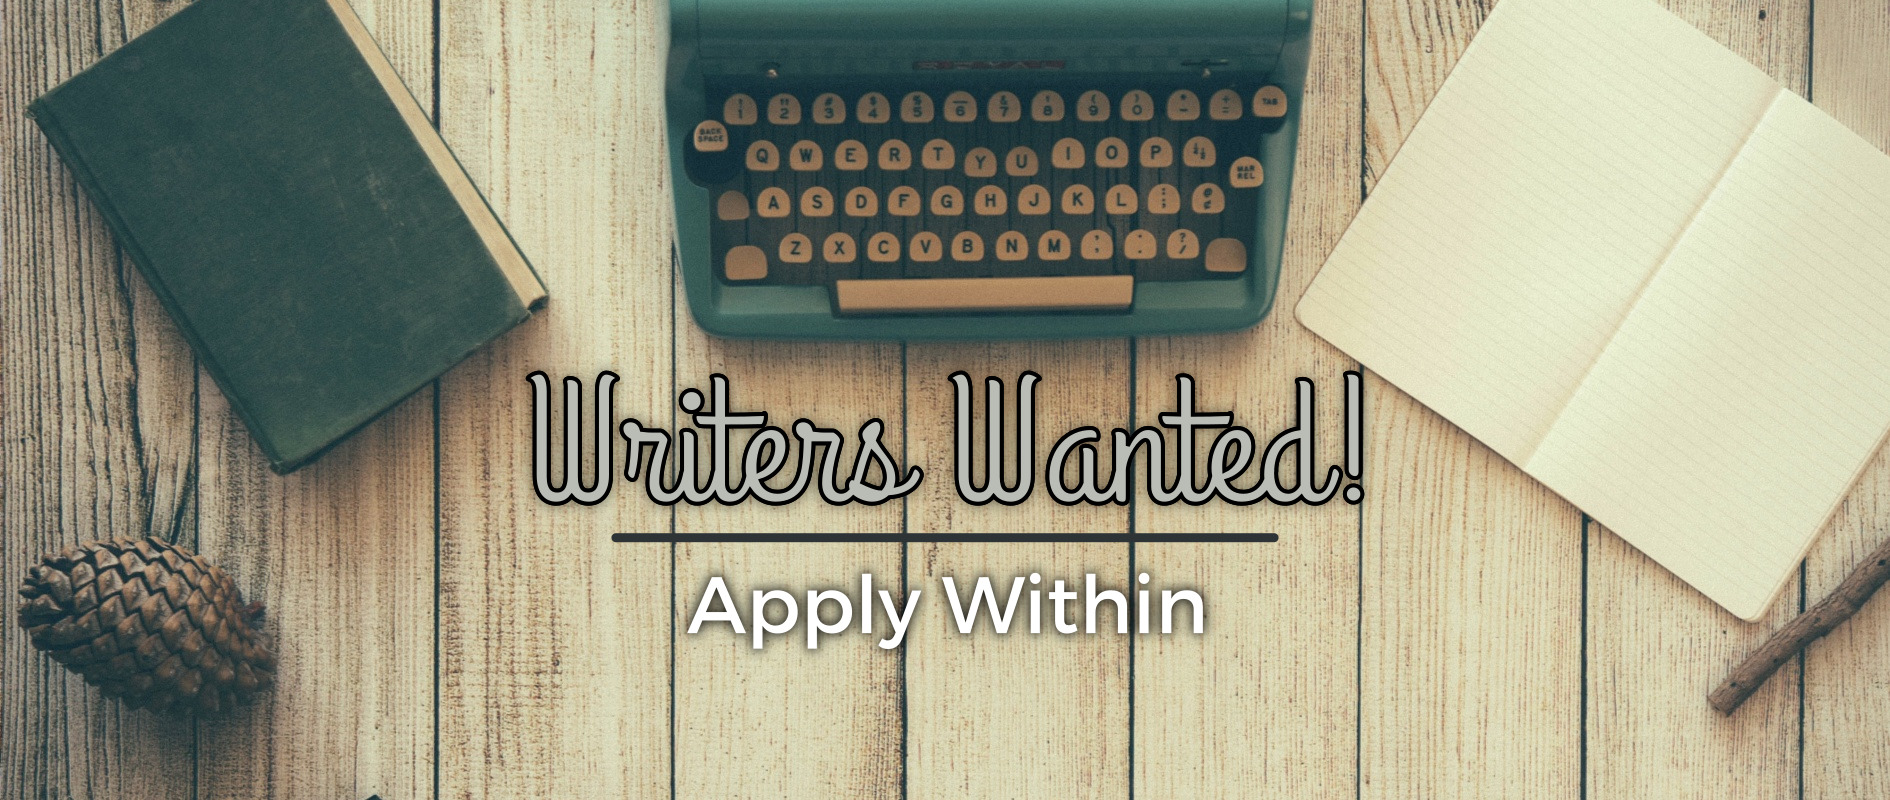 Calling all writers.